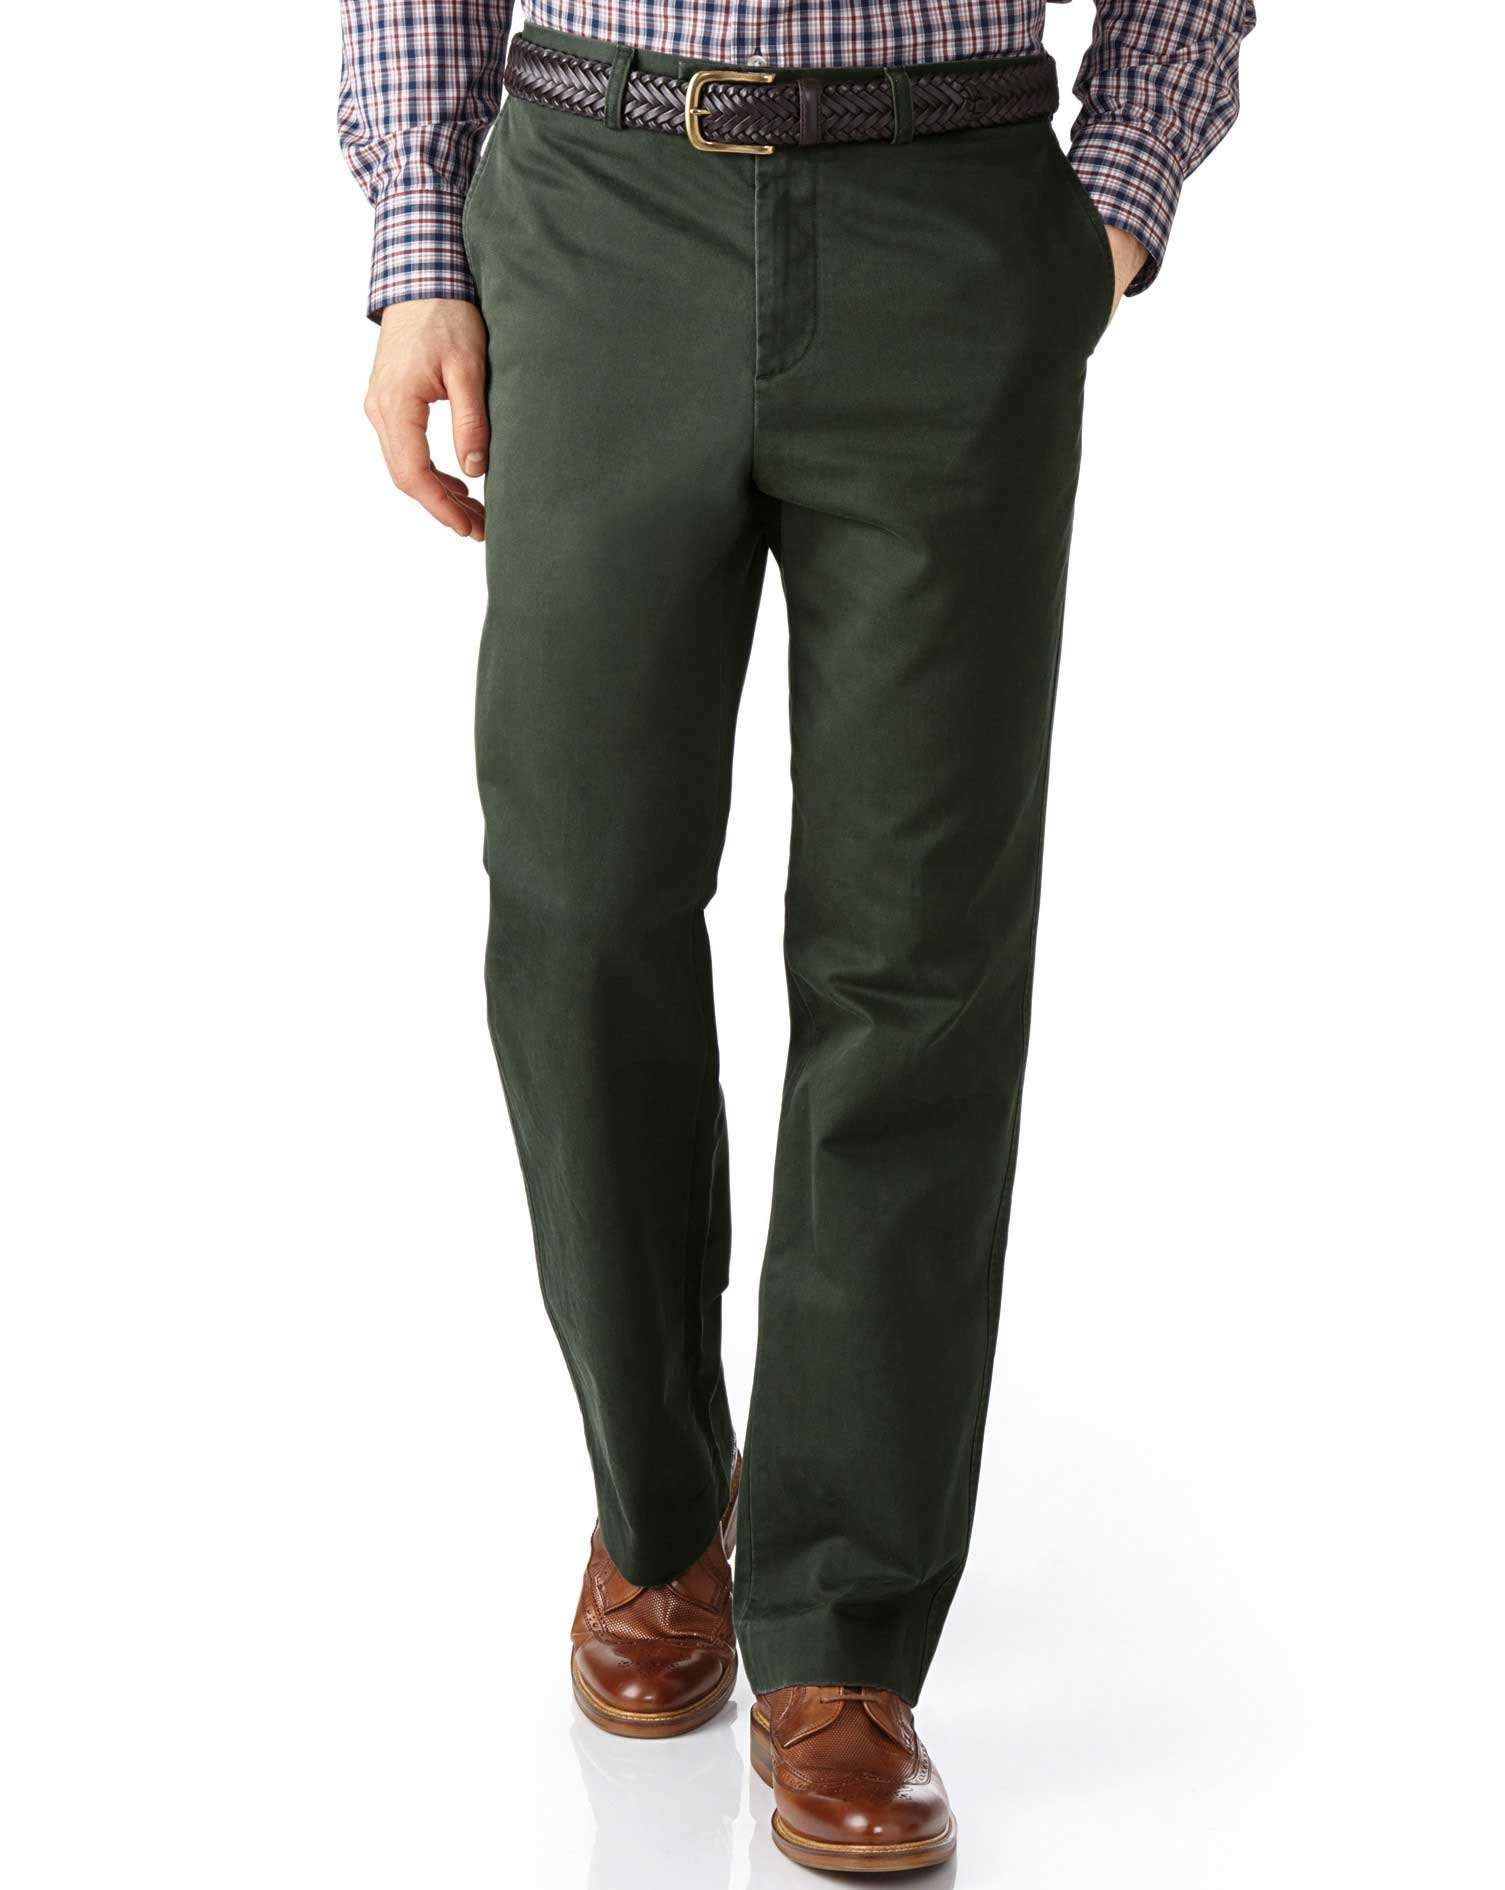 Dark Green Classic Fit Flat Front Weekend Cotton Chino Trousers Size W32 L38 by Charles Tyrwhitt